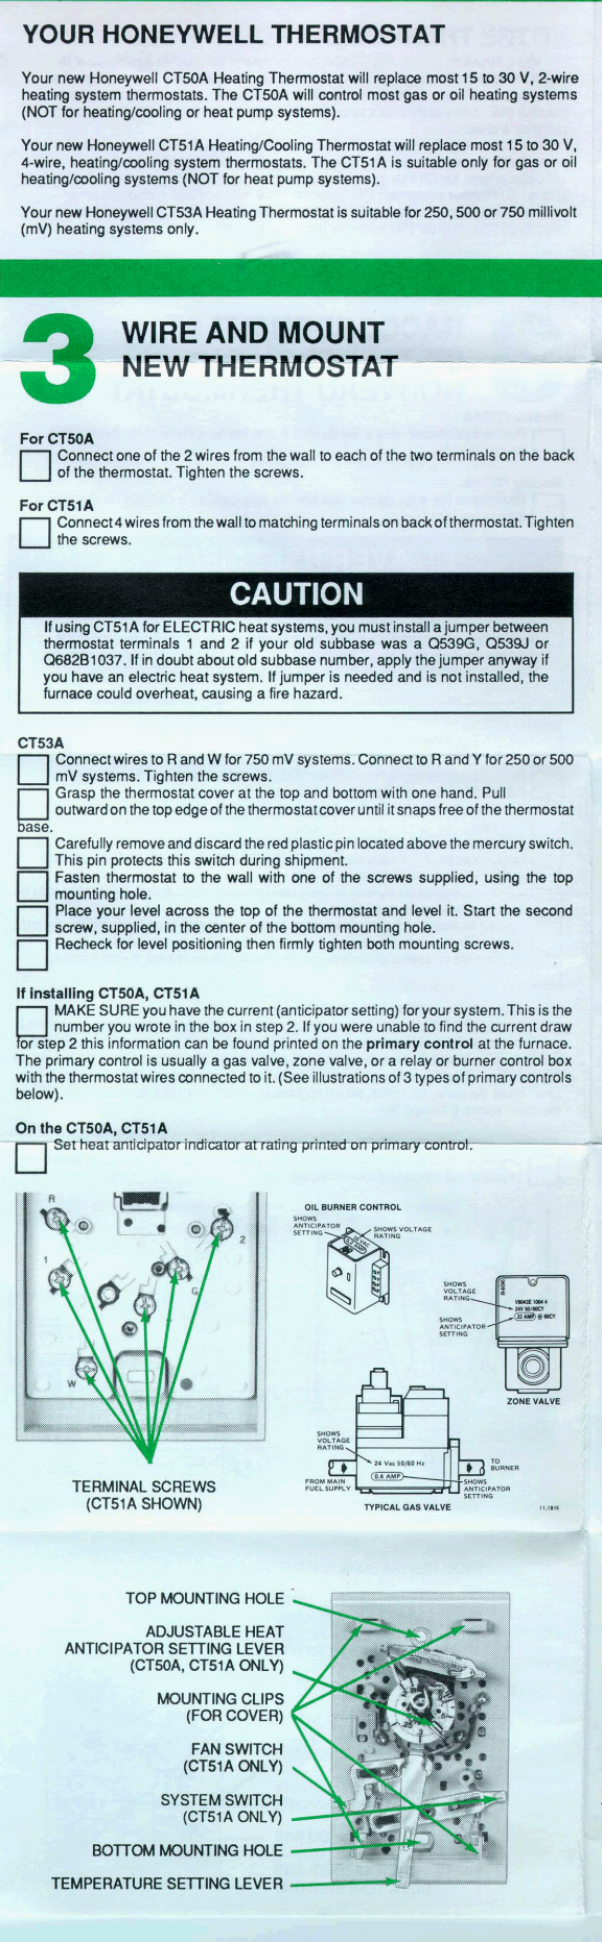 Honeywell Ct50a Installation Instructions 69 0265b Ct51a Thermostat Mercury Switch Page 2 Of 6